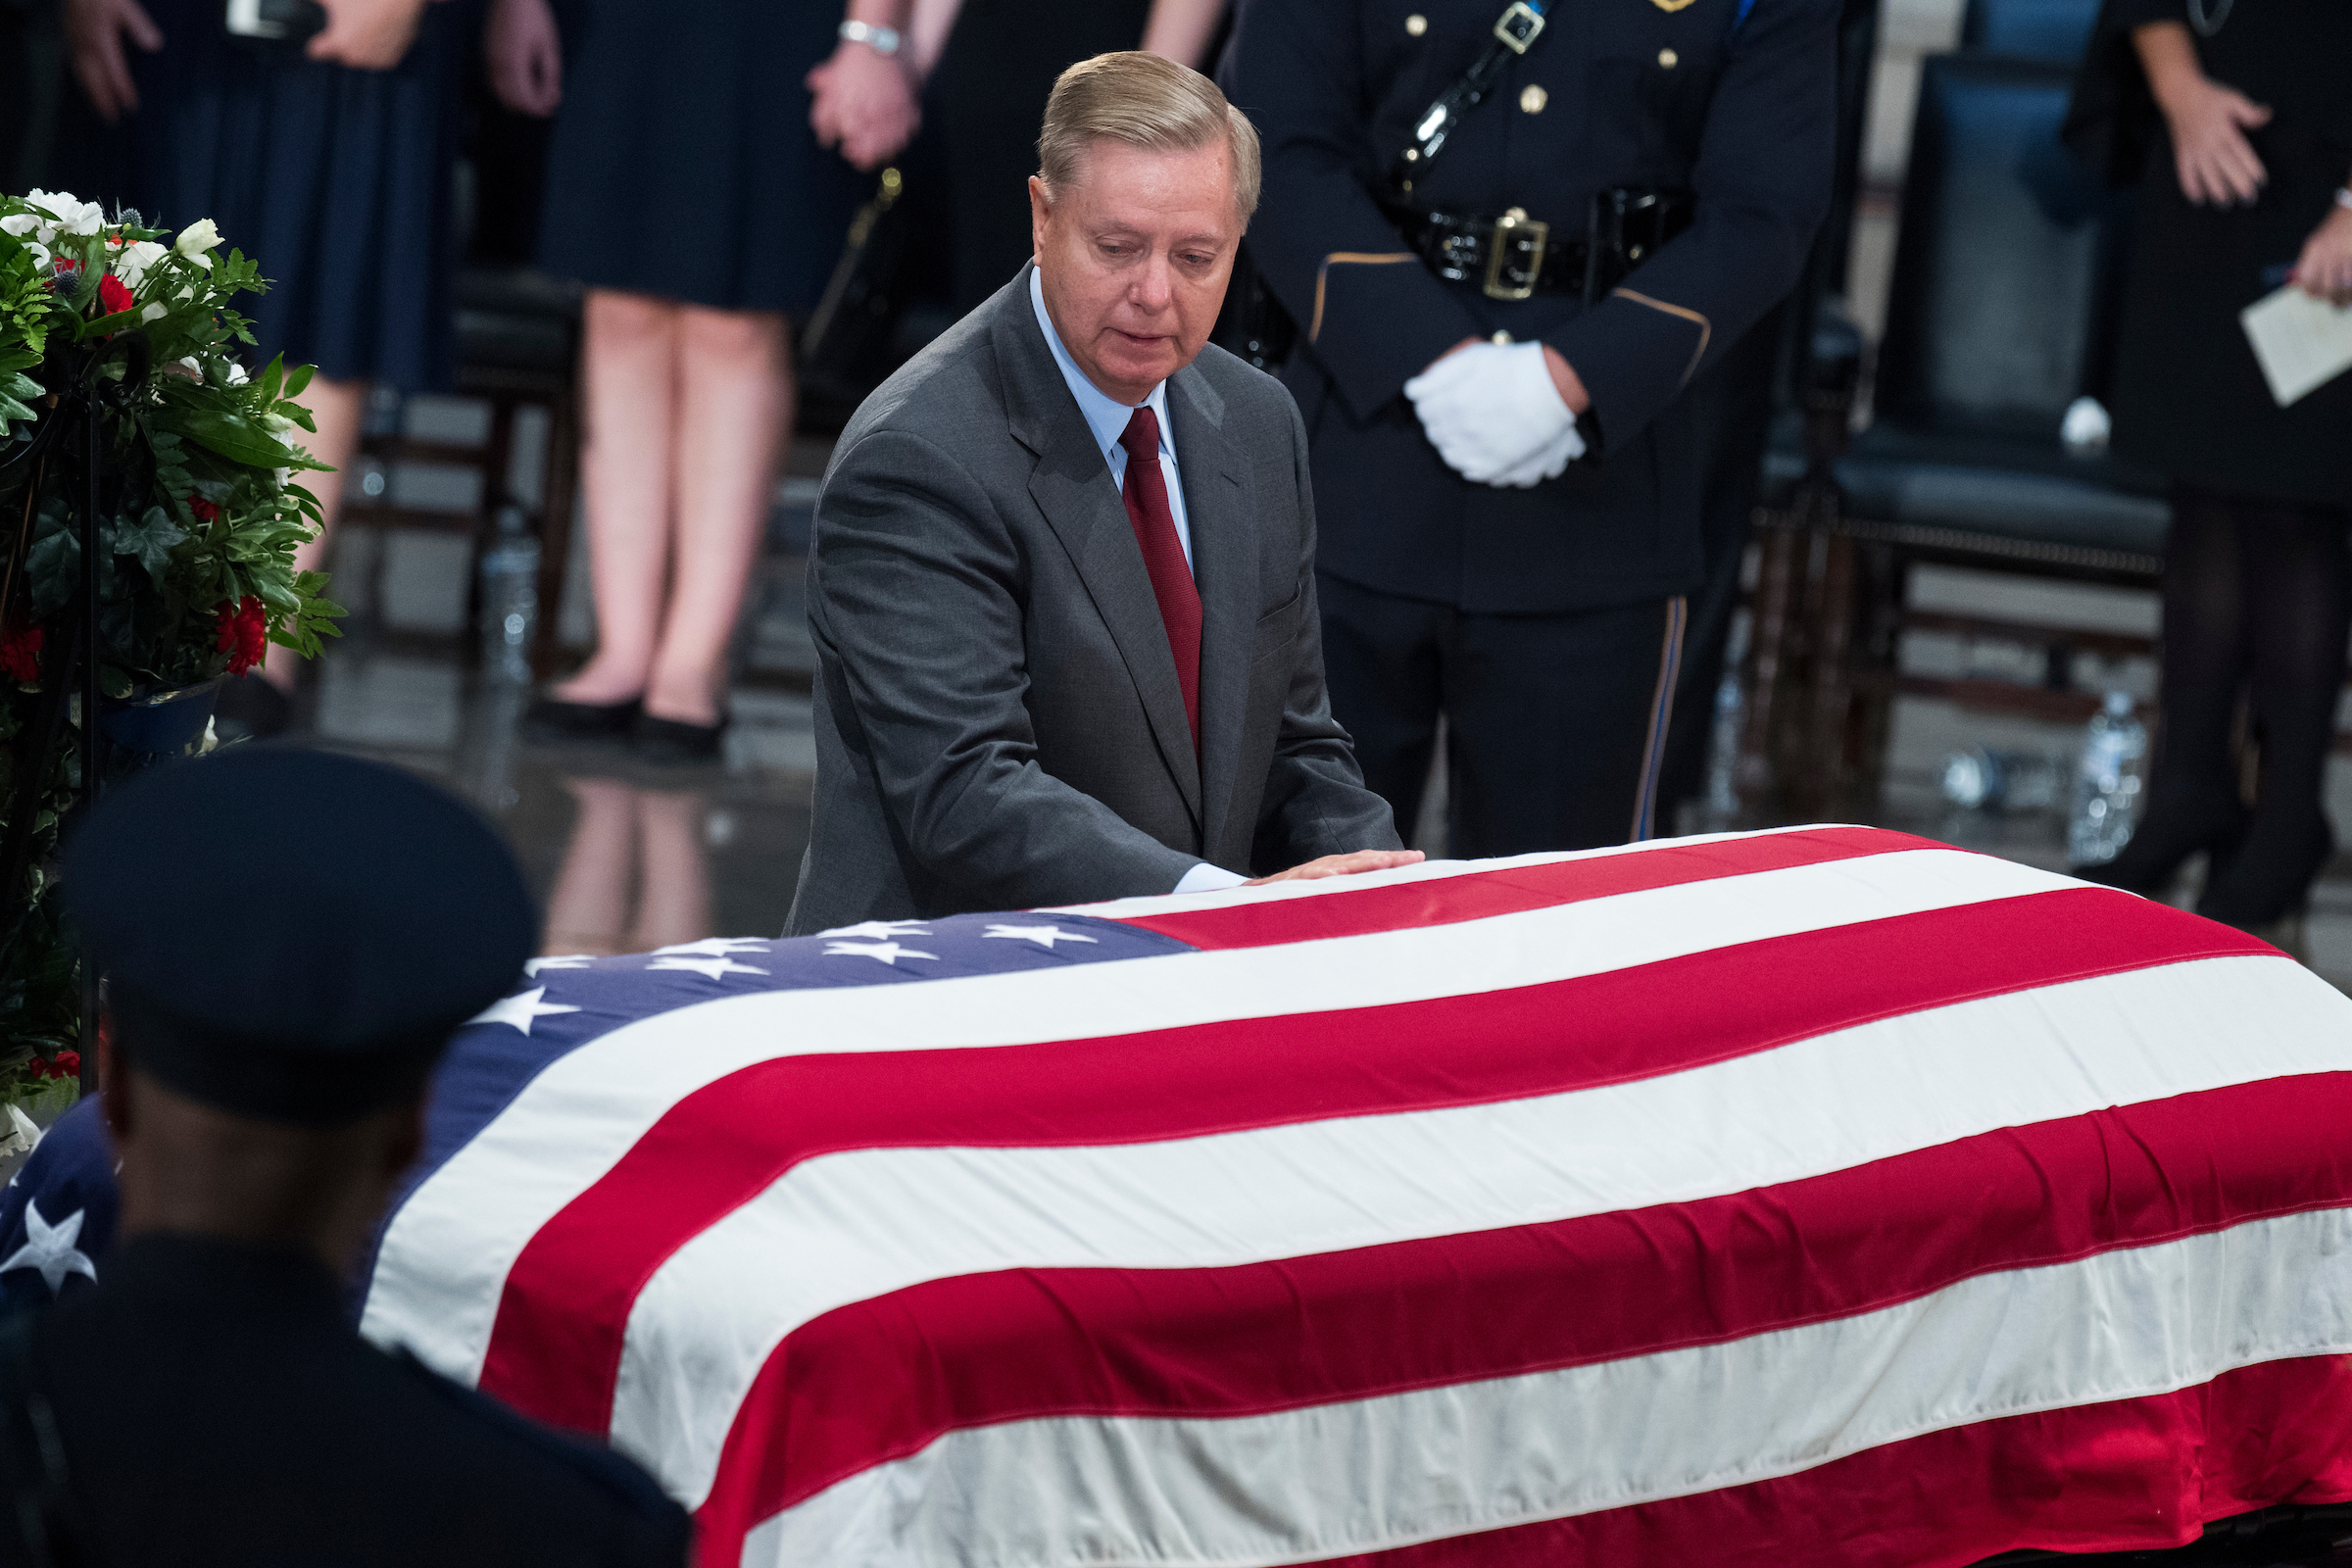 UNITED STATES - AUGUST 31: Sen. Lindsey Graham, R-S.C., pays respect to the late Sen. John McCain, R-Ariz., as the senator lies in state in the Capitol rotunda on August 31, 2018. (Photo By Tom Williams/CQ Roll Call)